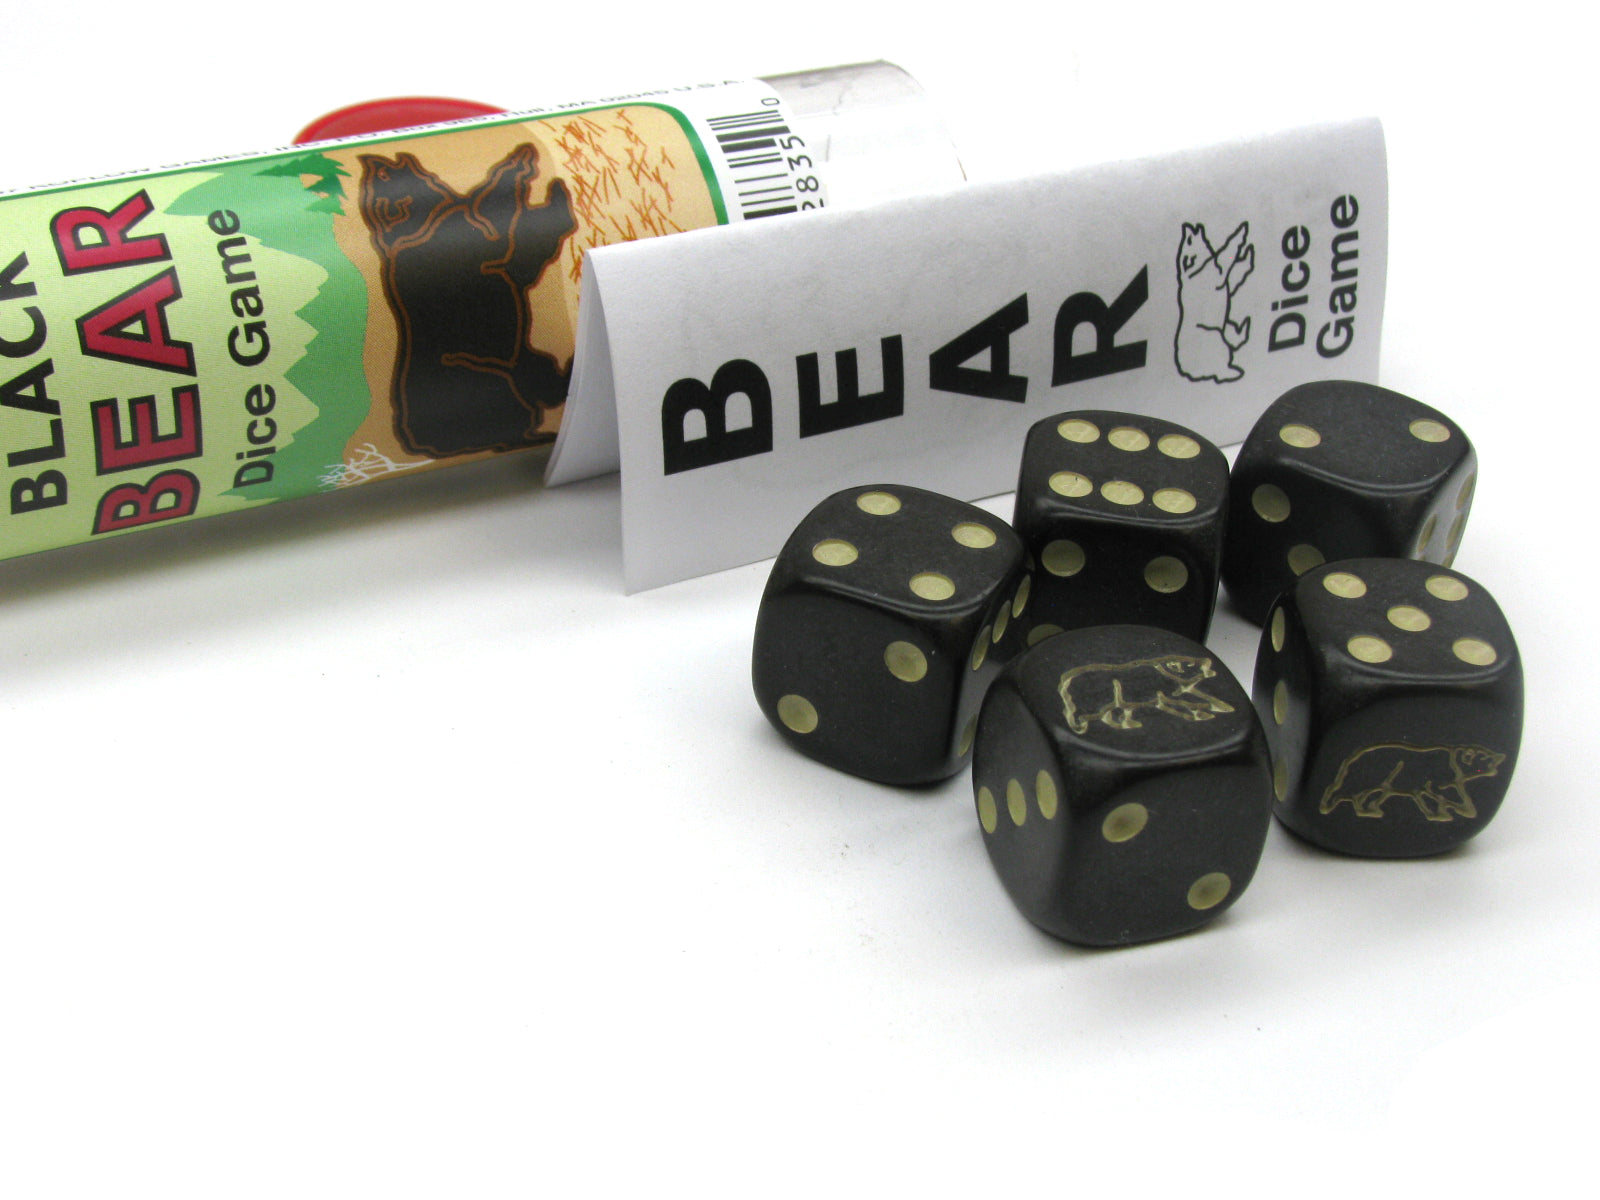 Black Bear Dice Game 5 Dice Set with Travel Tube and Instructions